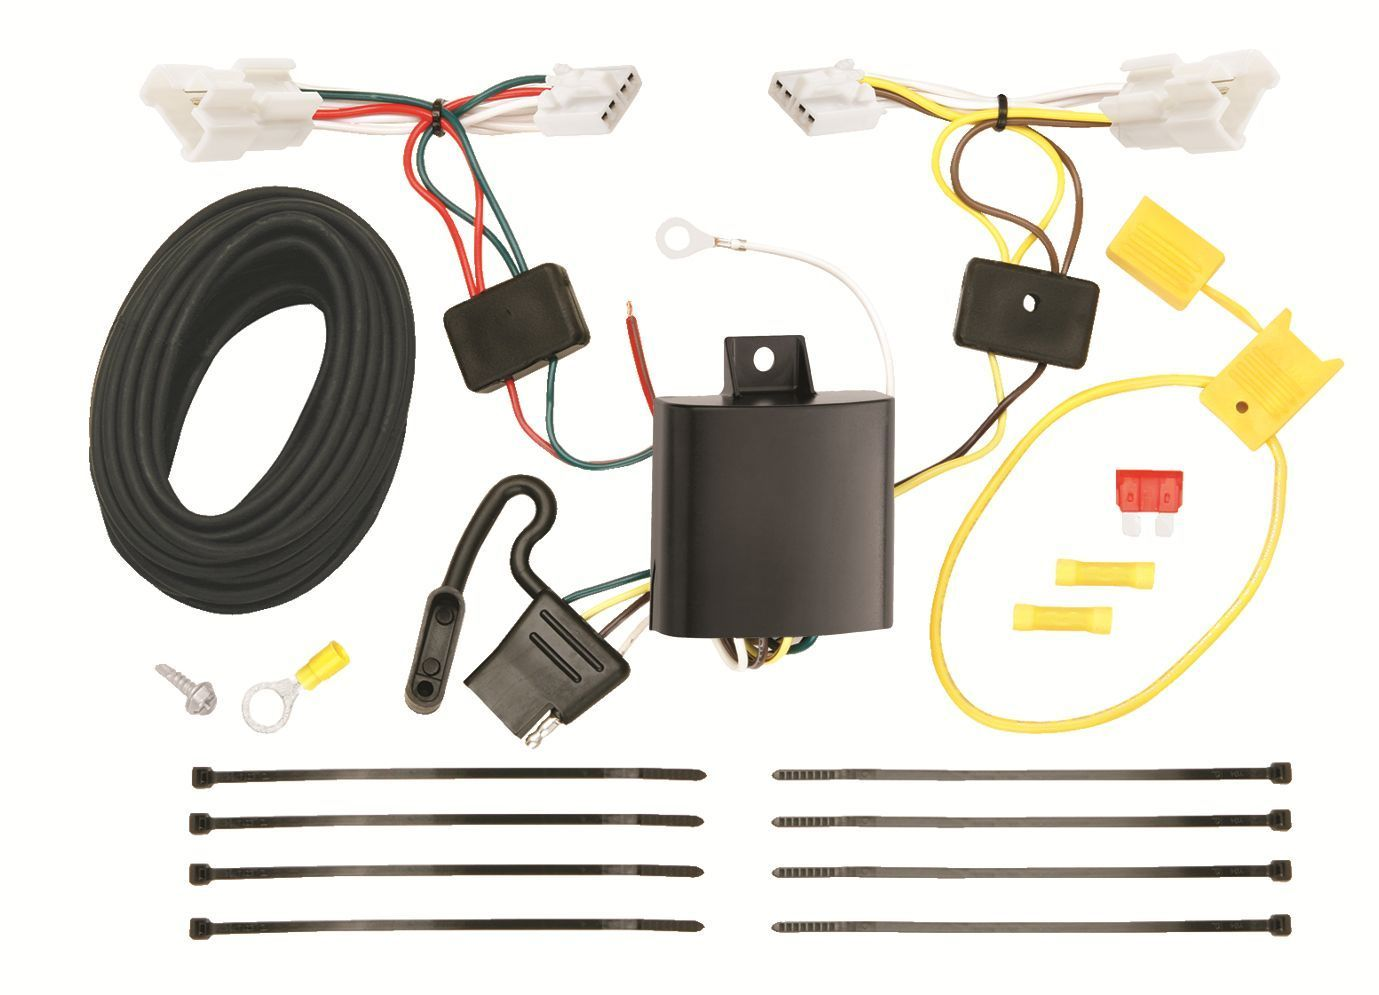 Trailer Wiring Harness Kit For 11-14 Hyundai Sonata Except Hybrid 2010 All Style